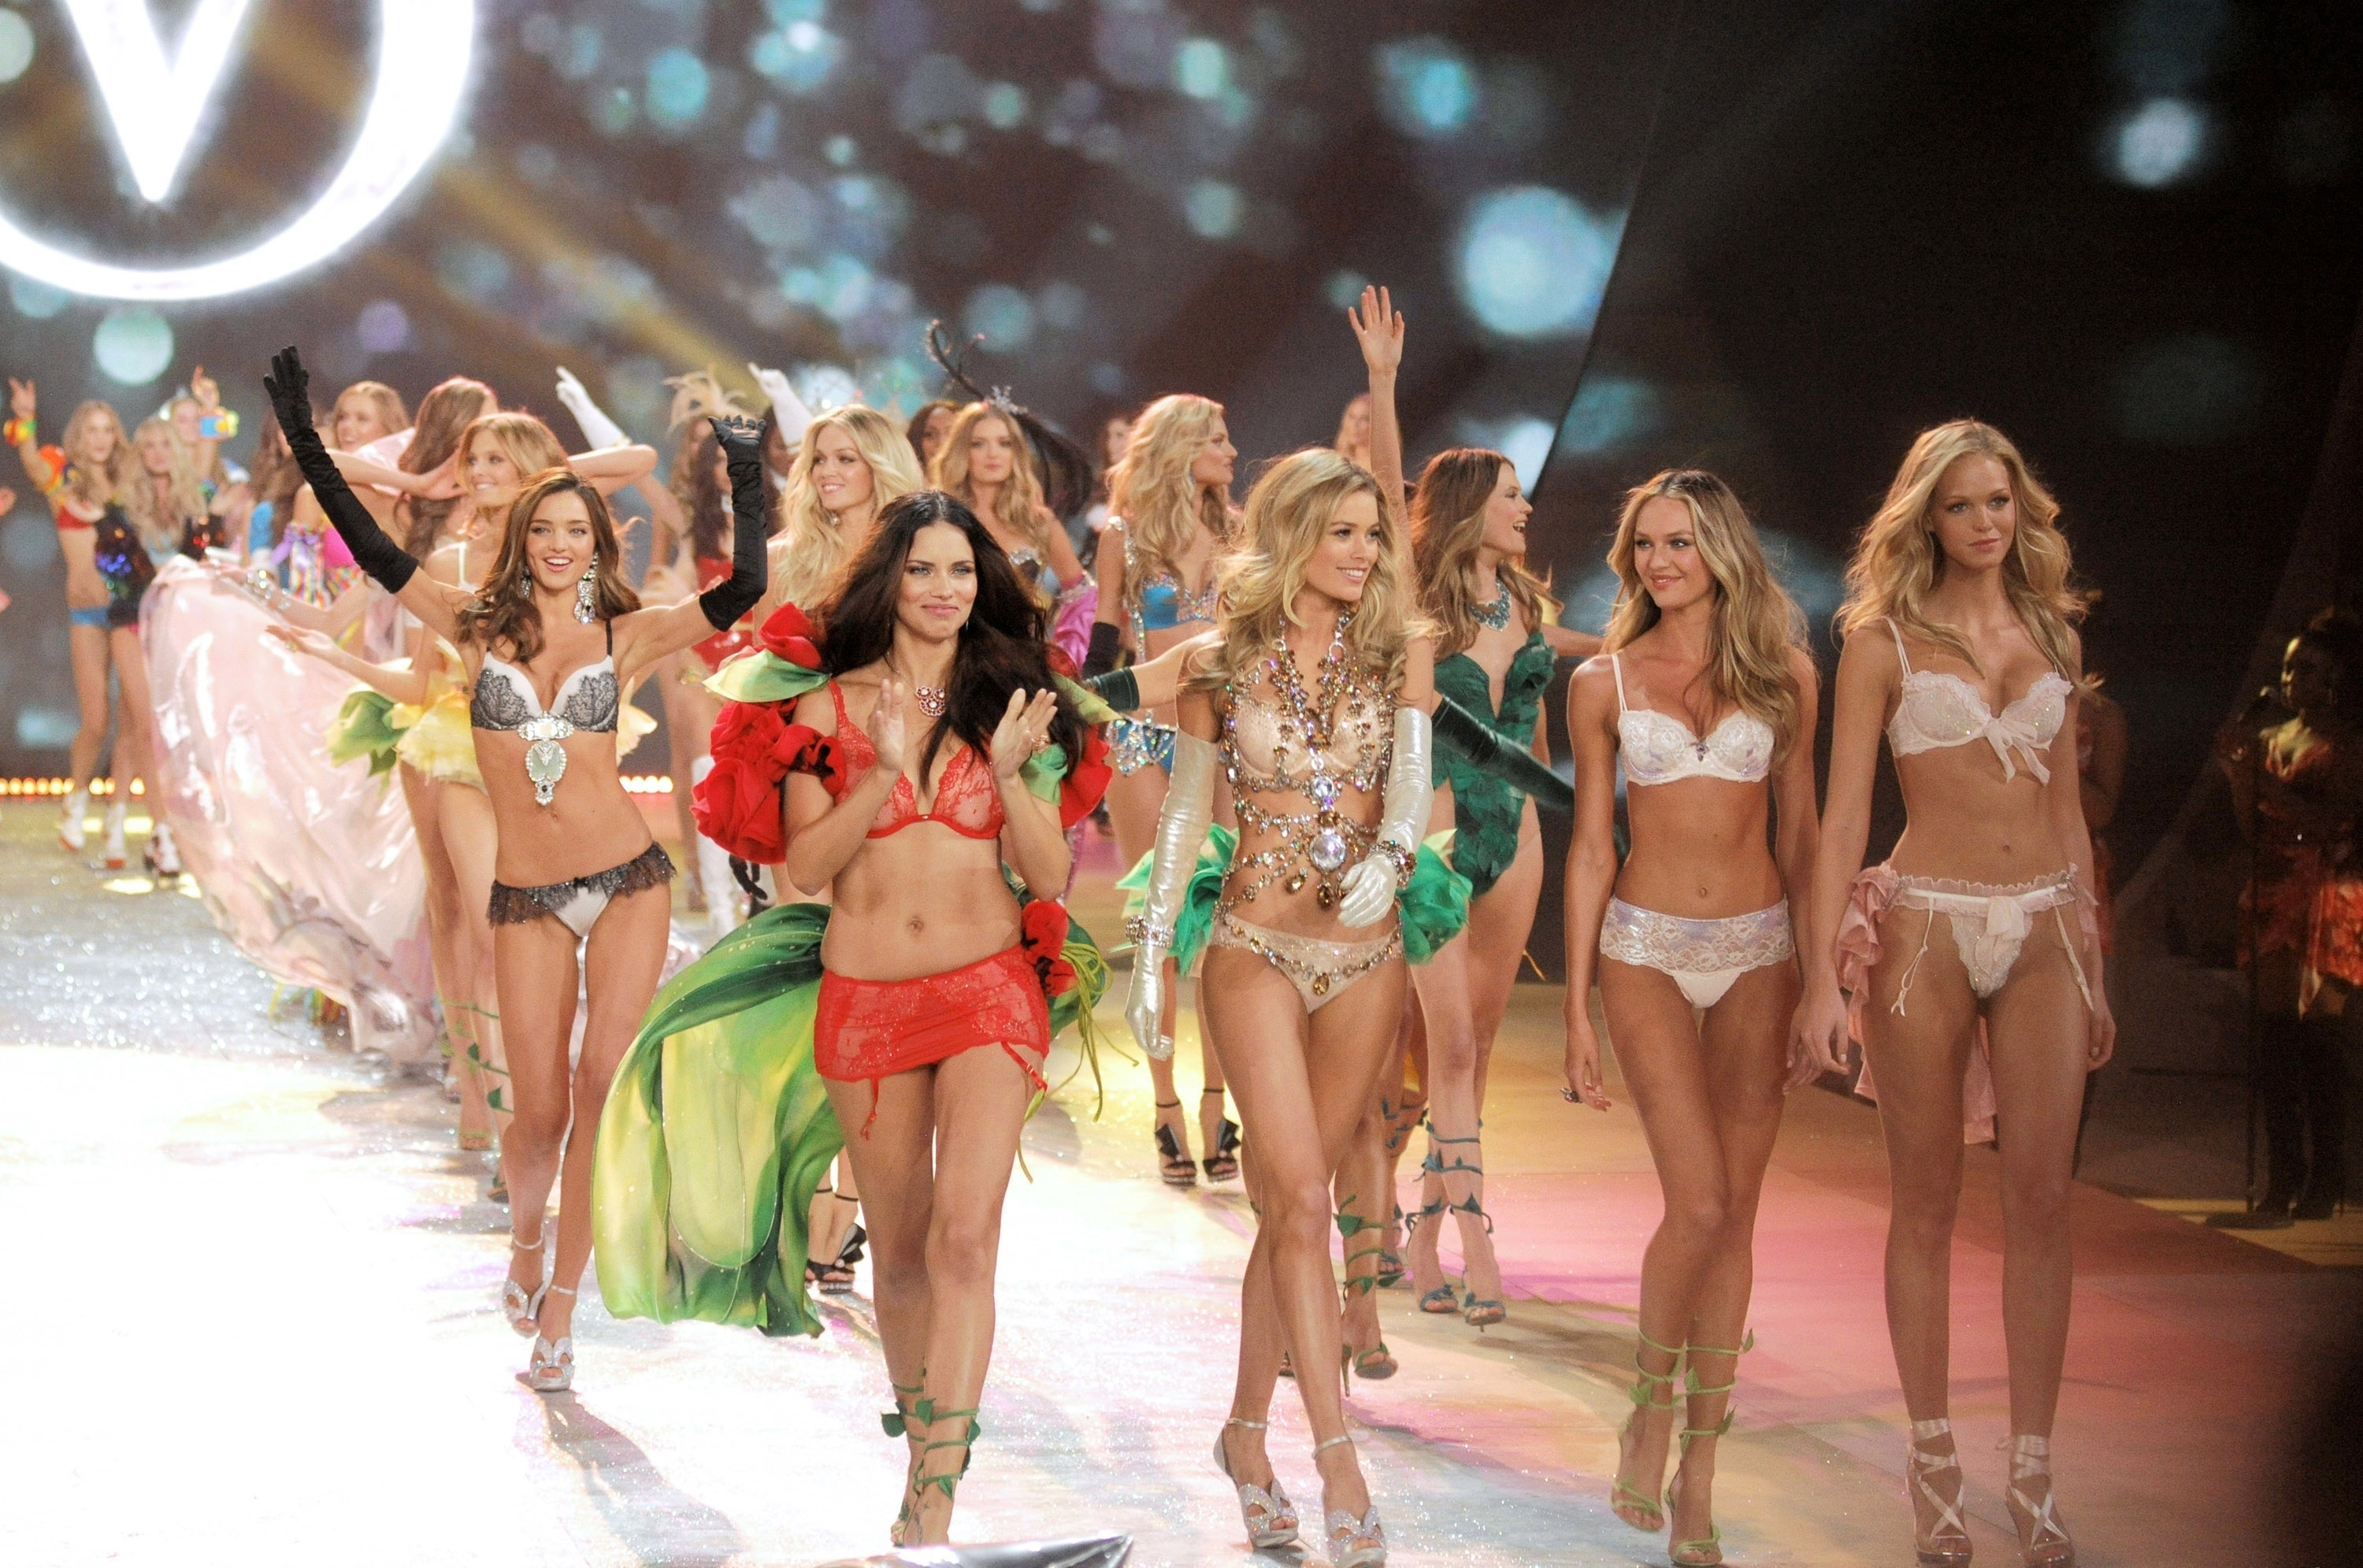 Victoria's Secret Fashion Show Picture & Images